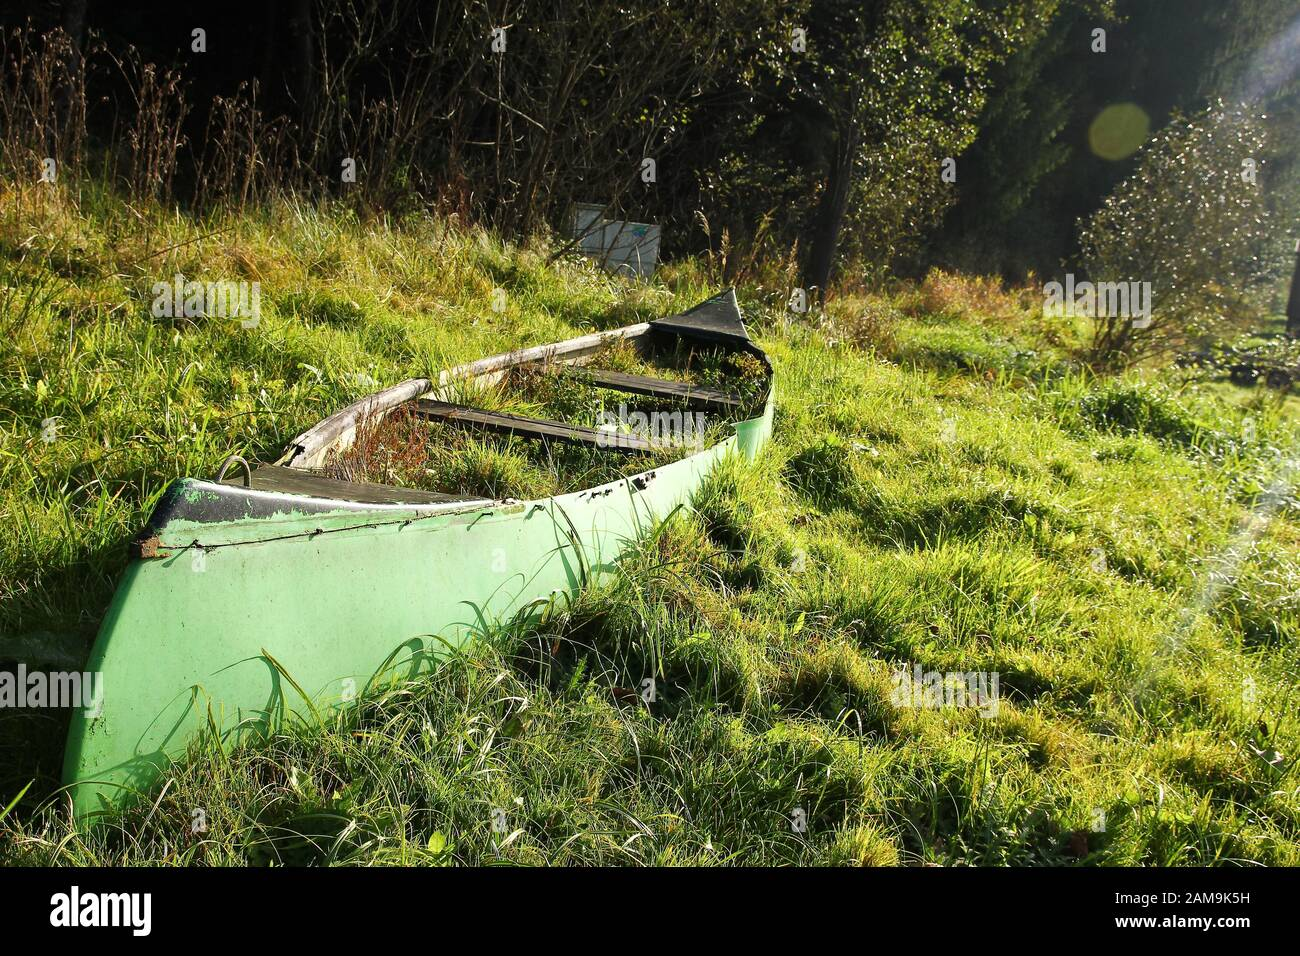 The old canoe is lying on the meadow close to the river and is abandoned, fully overgrown by grass and useless. Stock Photo